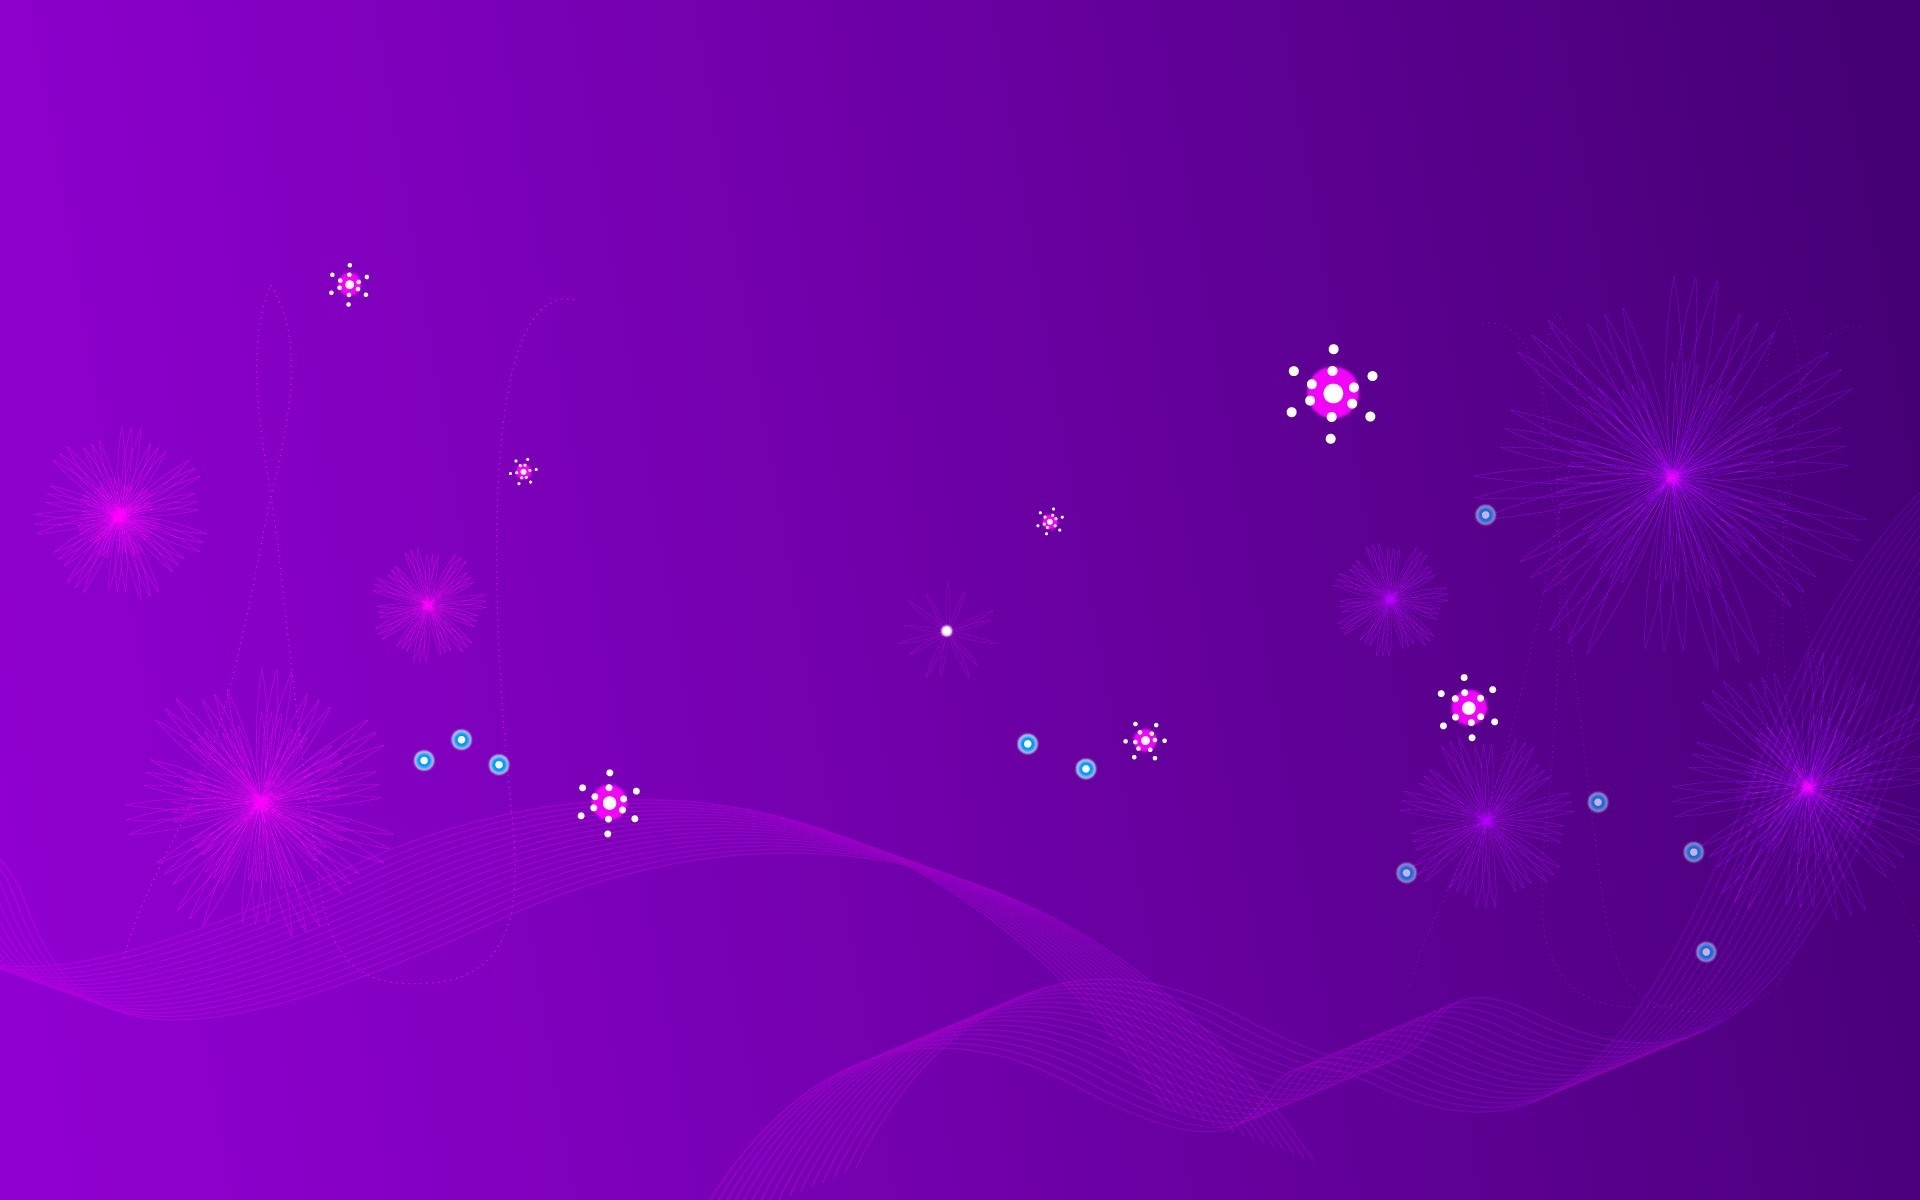 Purple Star Wallpaper 61 Images